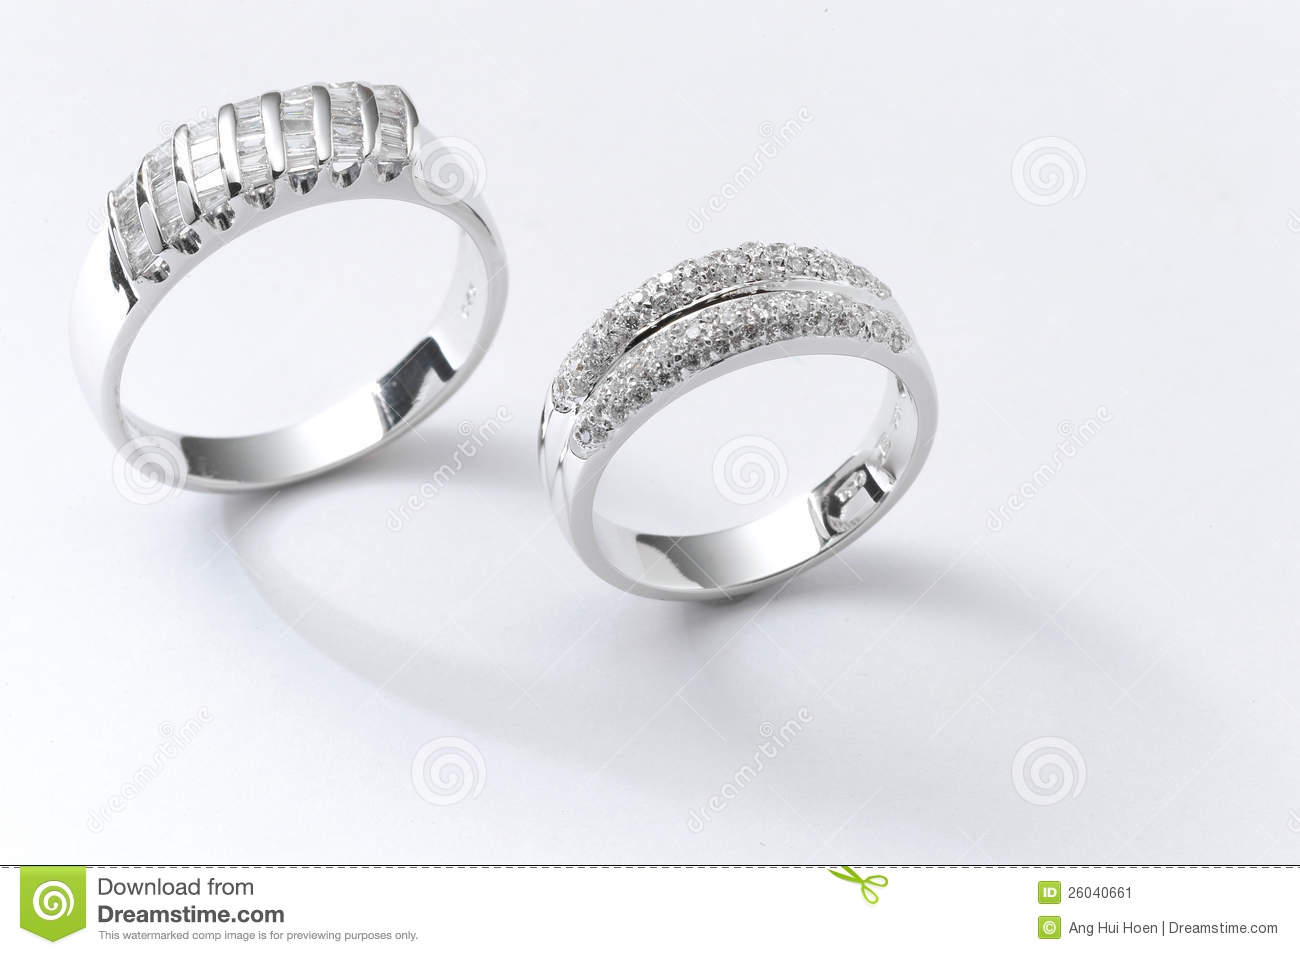 Couple Ring Royalty Free Stock Images - Image: 20403989